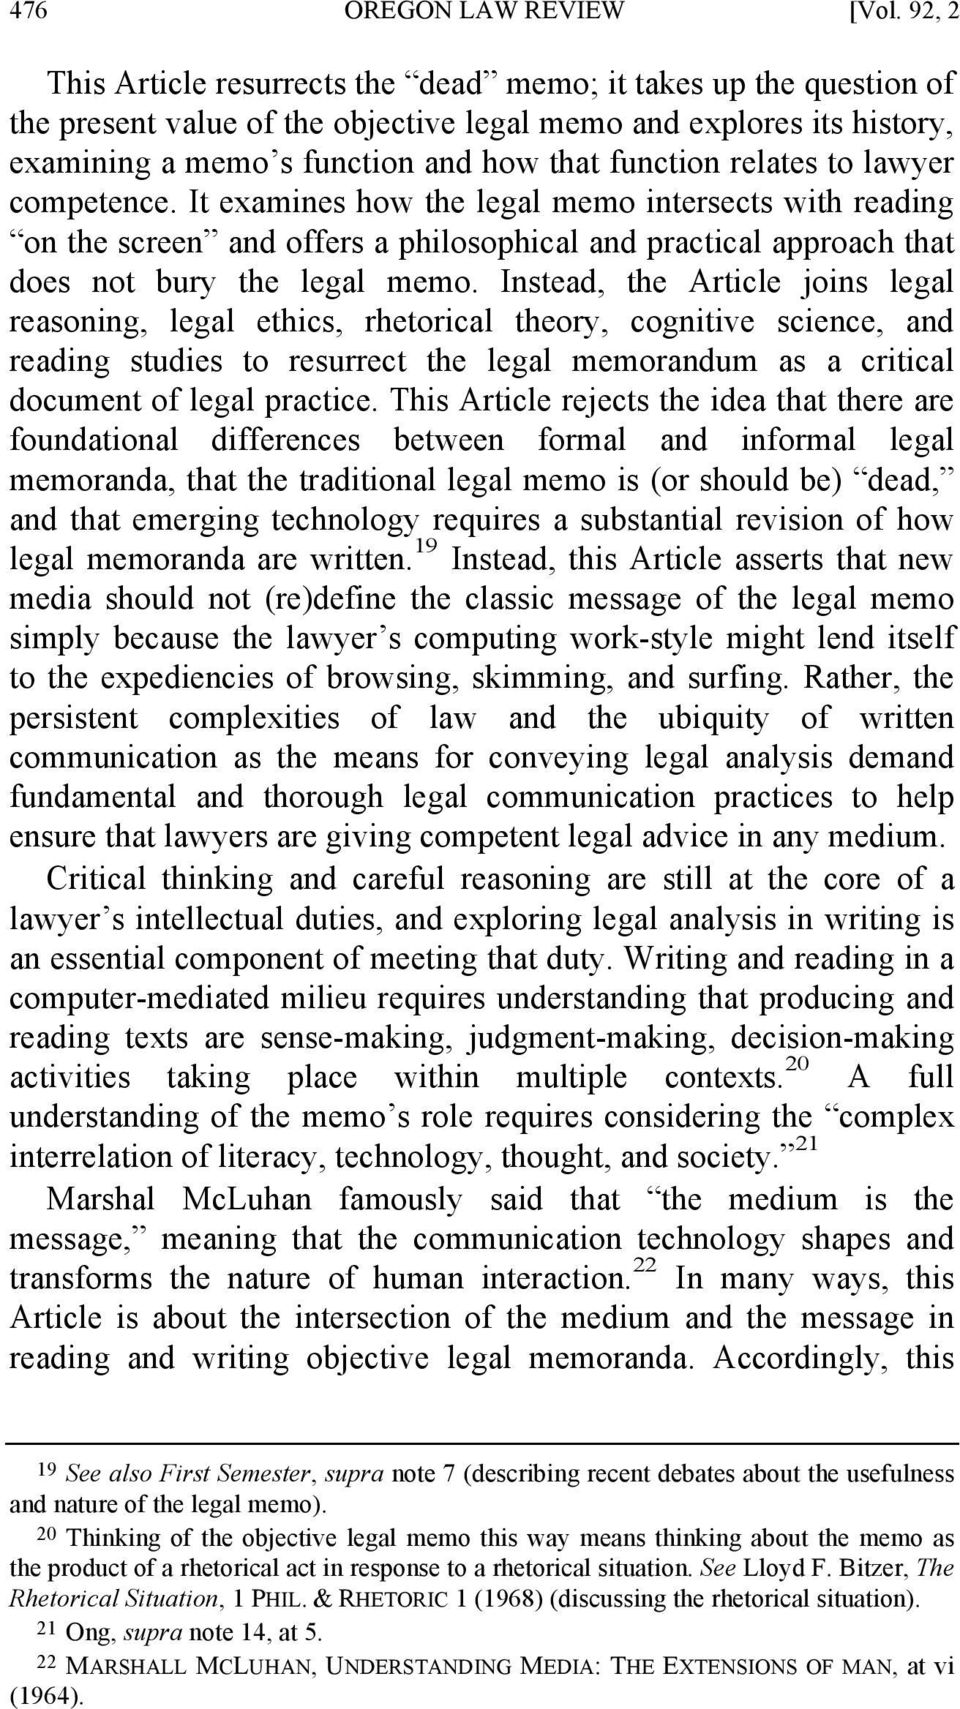 relates to lawyer competence. It examines how the legal memo intersects with reading on the screen and offers a philosophical and practical approach that does not bury the legal memo.